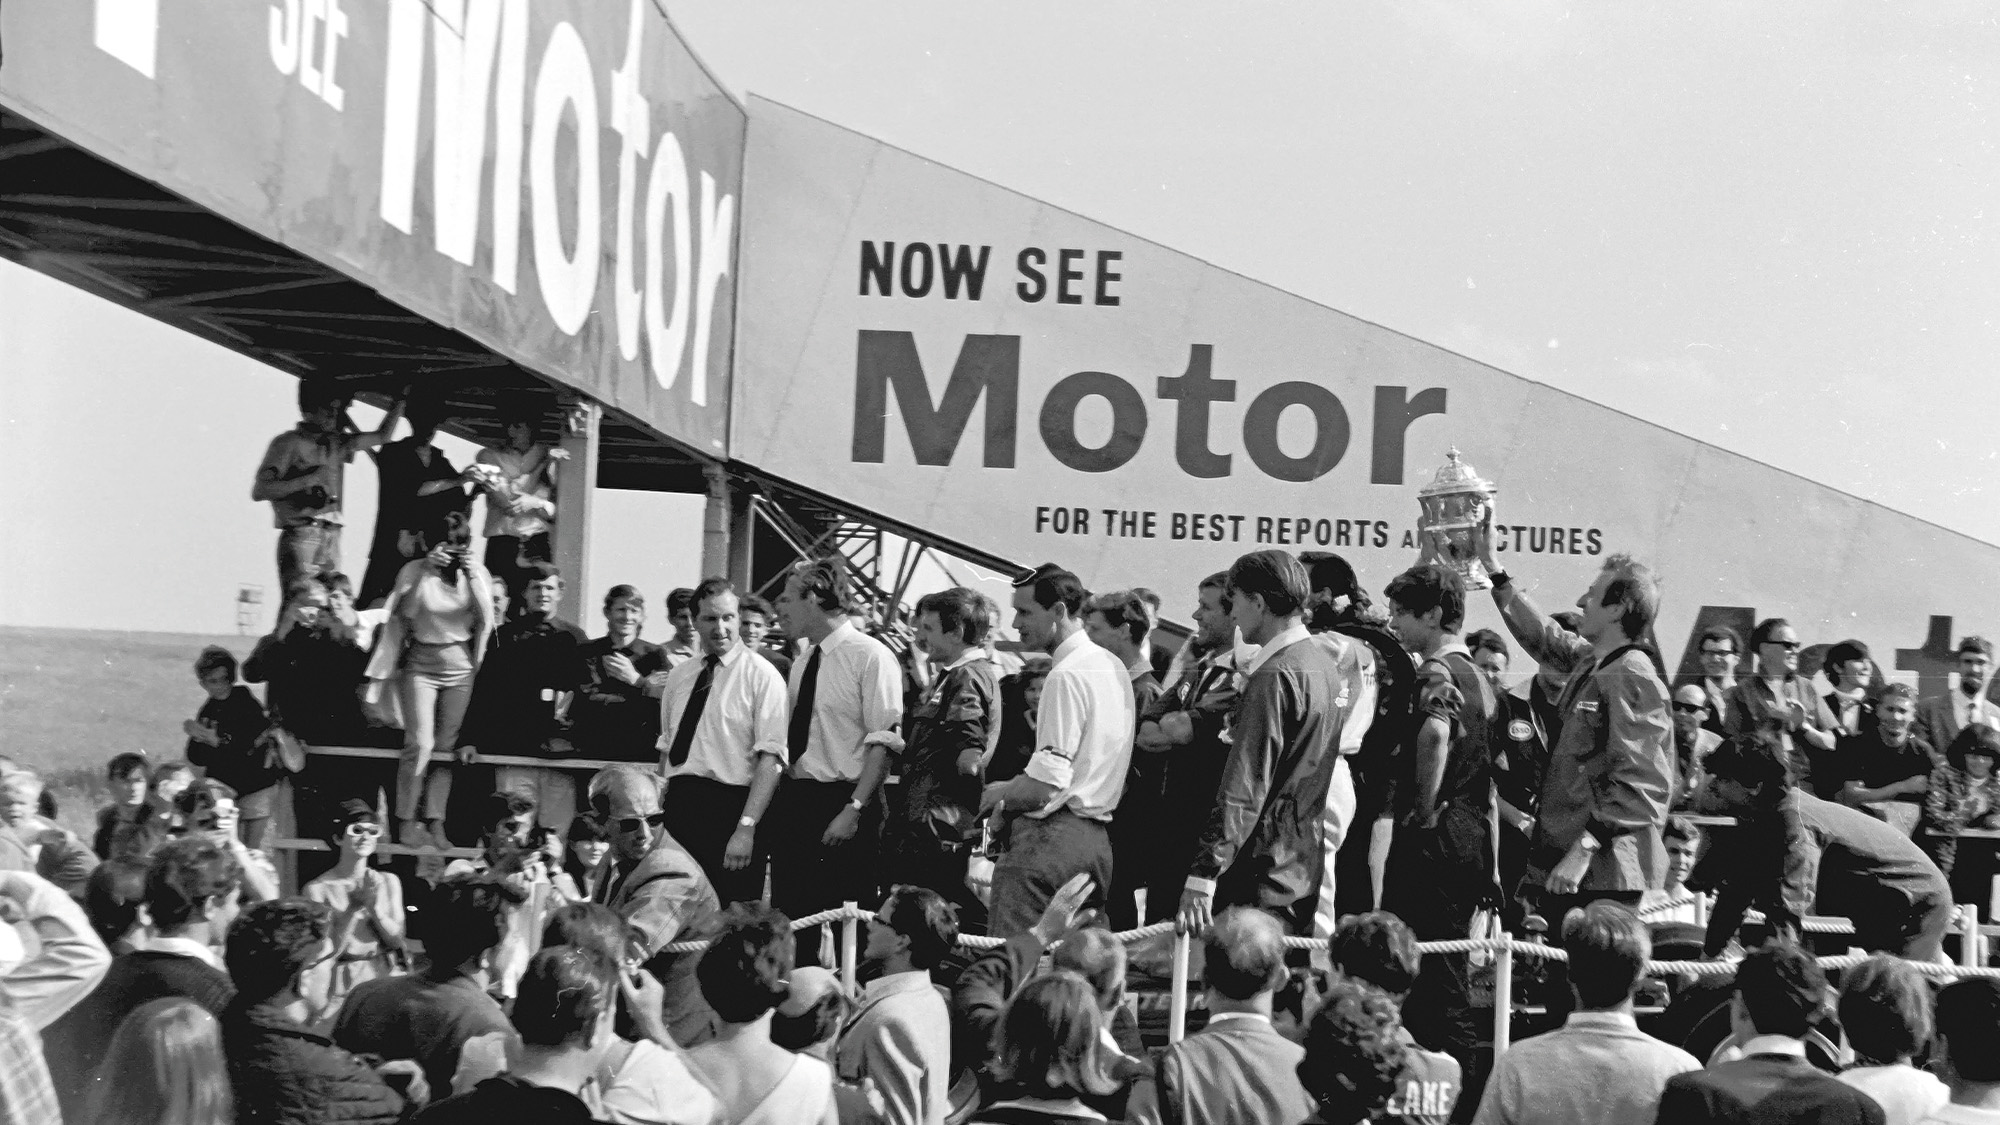 Jim Clark in the middle of the crowd after winning the 1967 British Grand Prix